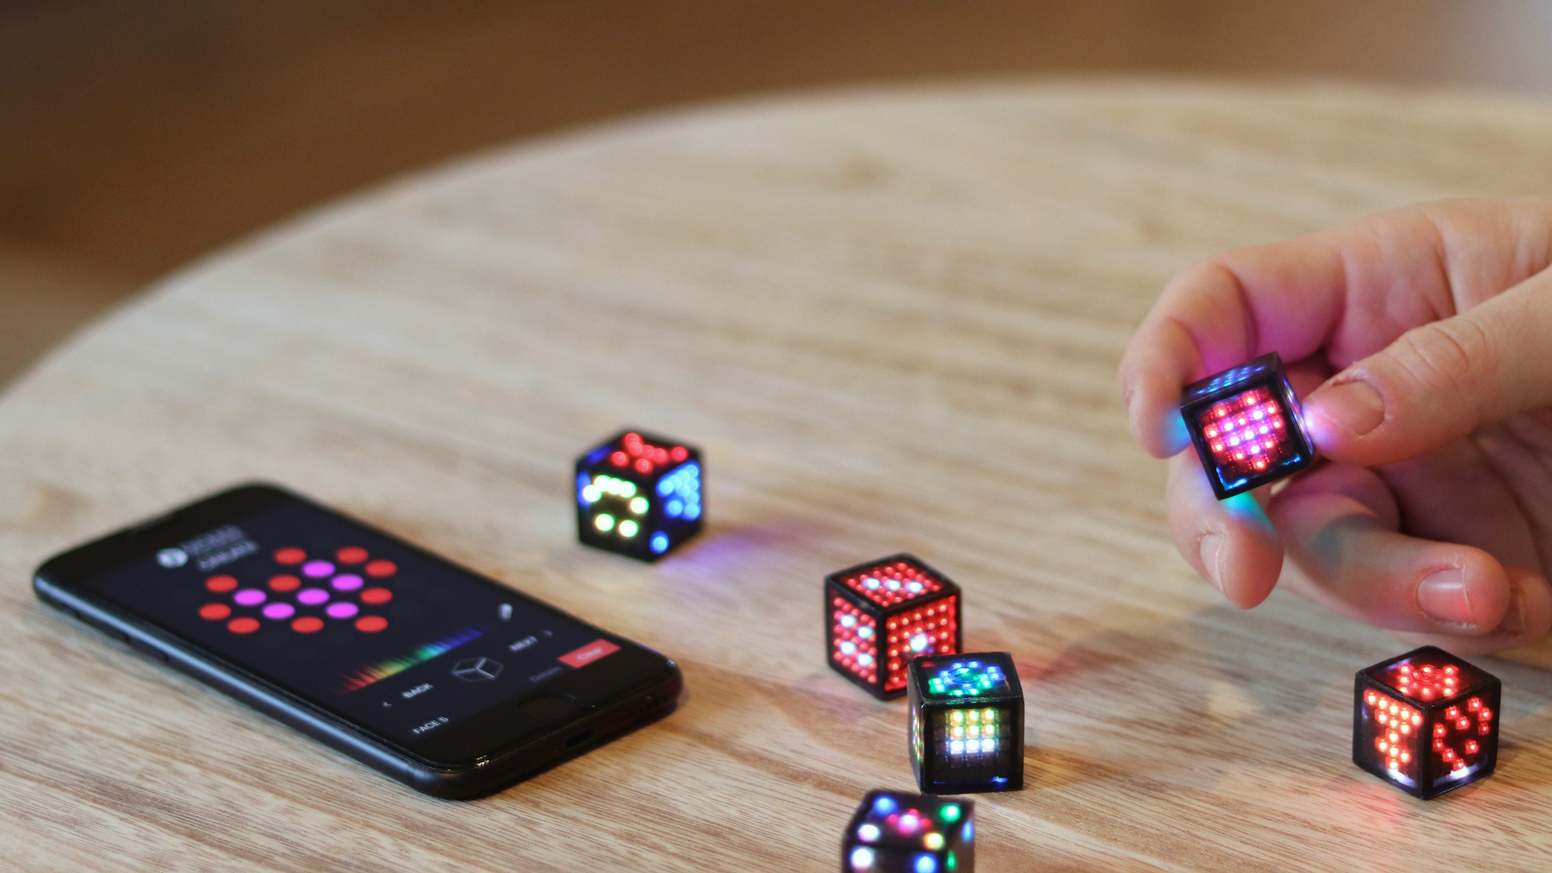 DICEES™ are smart connected dice. DICEES™ have 6 faces, each face is a screen and the 6 screens are composed of 148 RGB LEDs